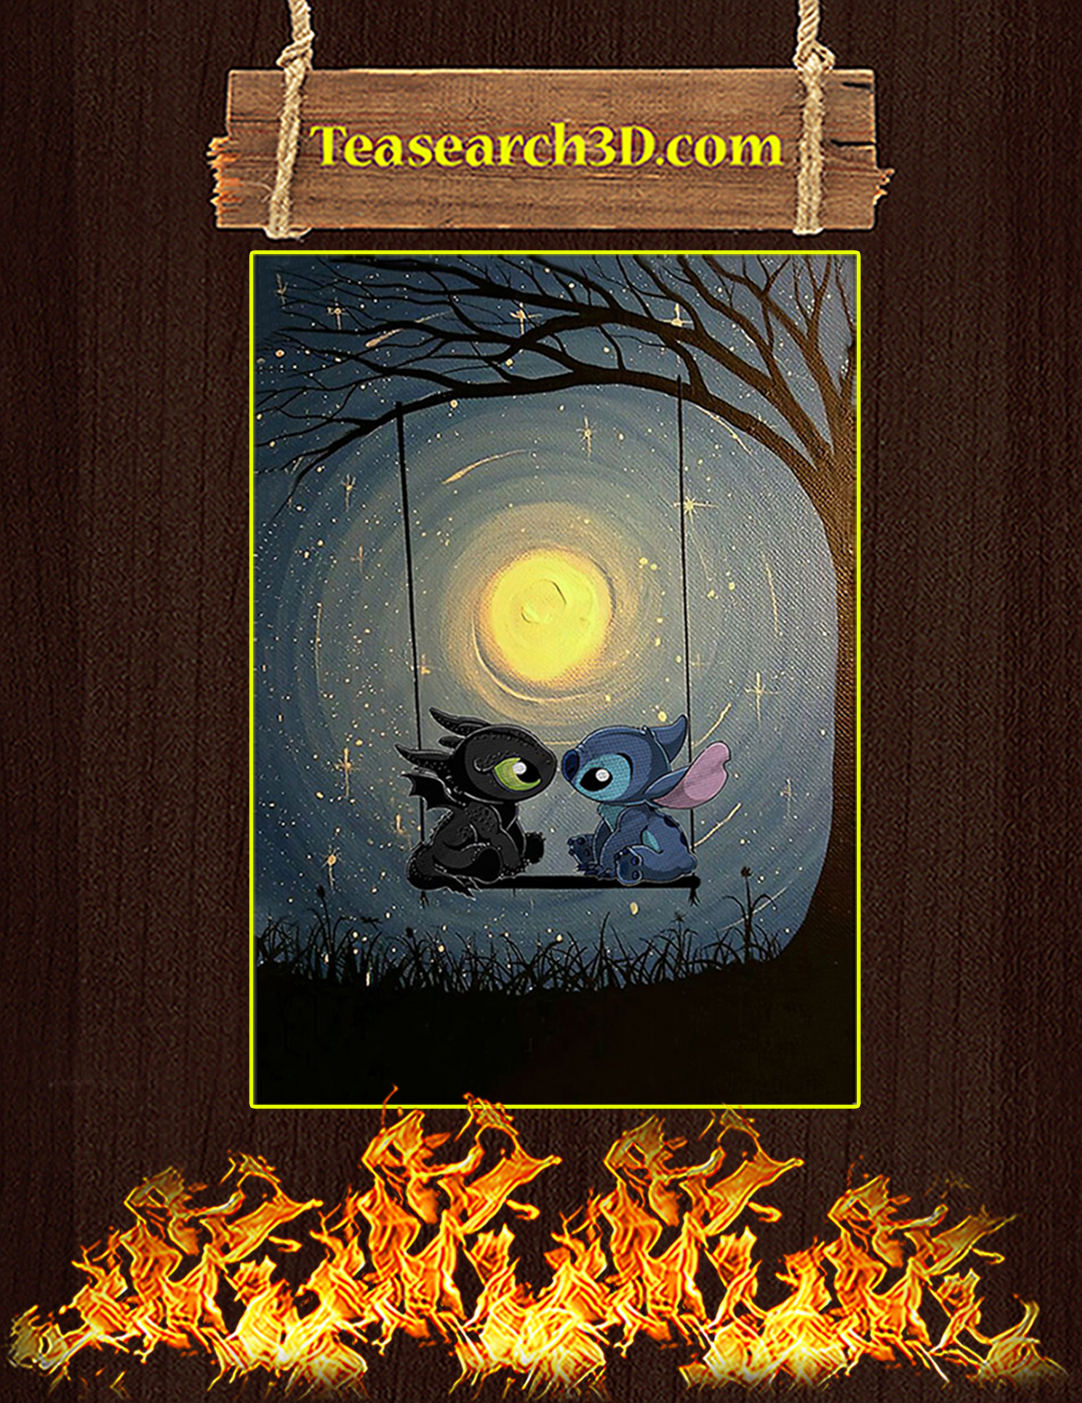 Stitch and toothless talking to the moon poster A2